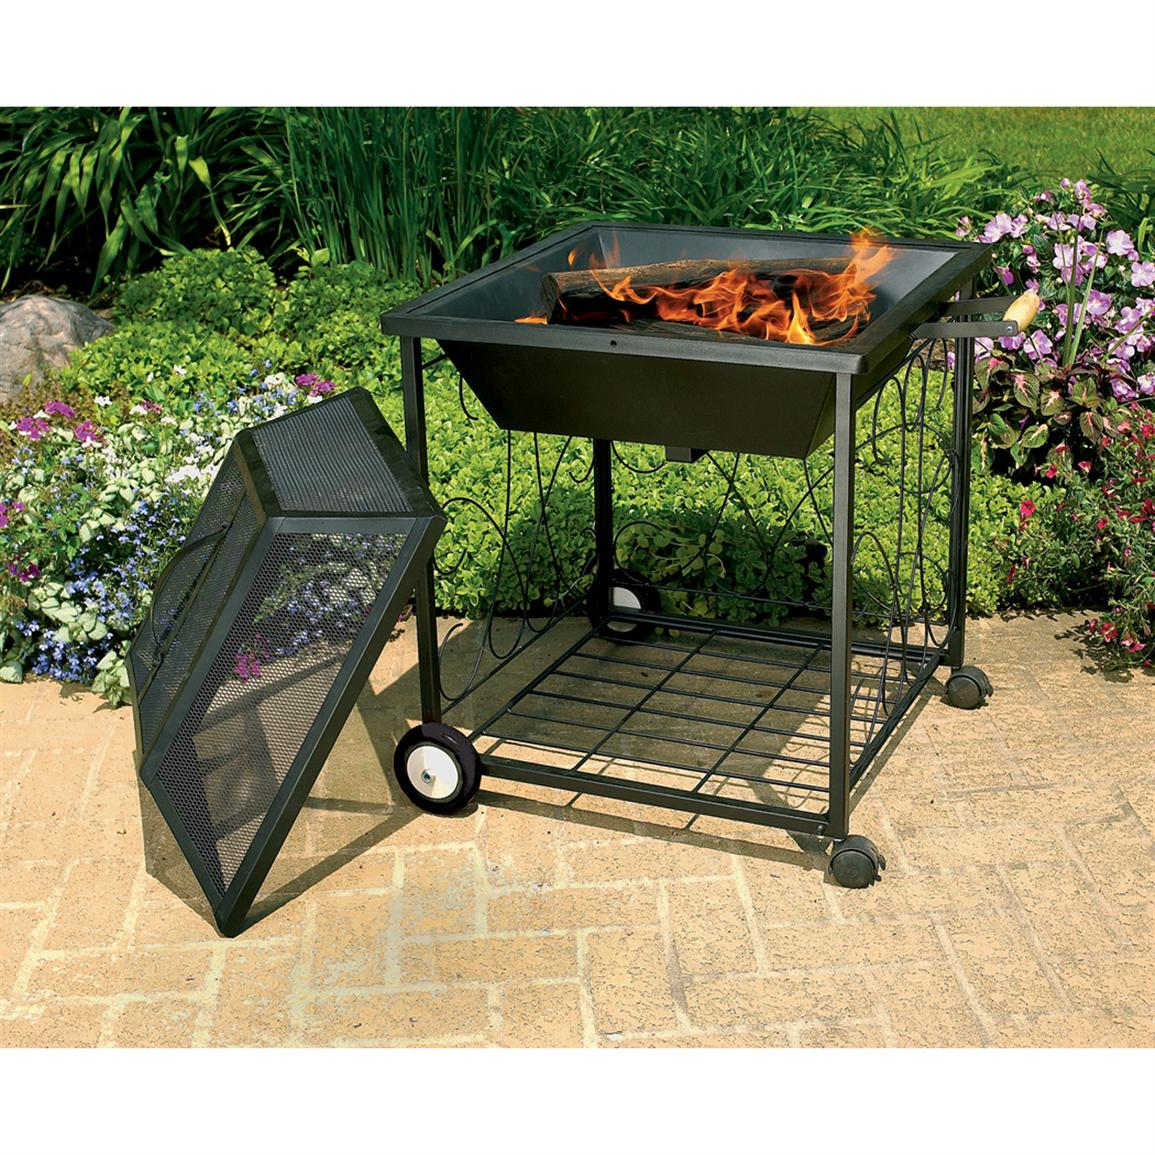 Best Portable Fire Pits : Portable outdoor fire pit with wheels fireplace design ideas